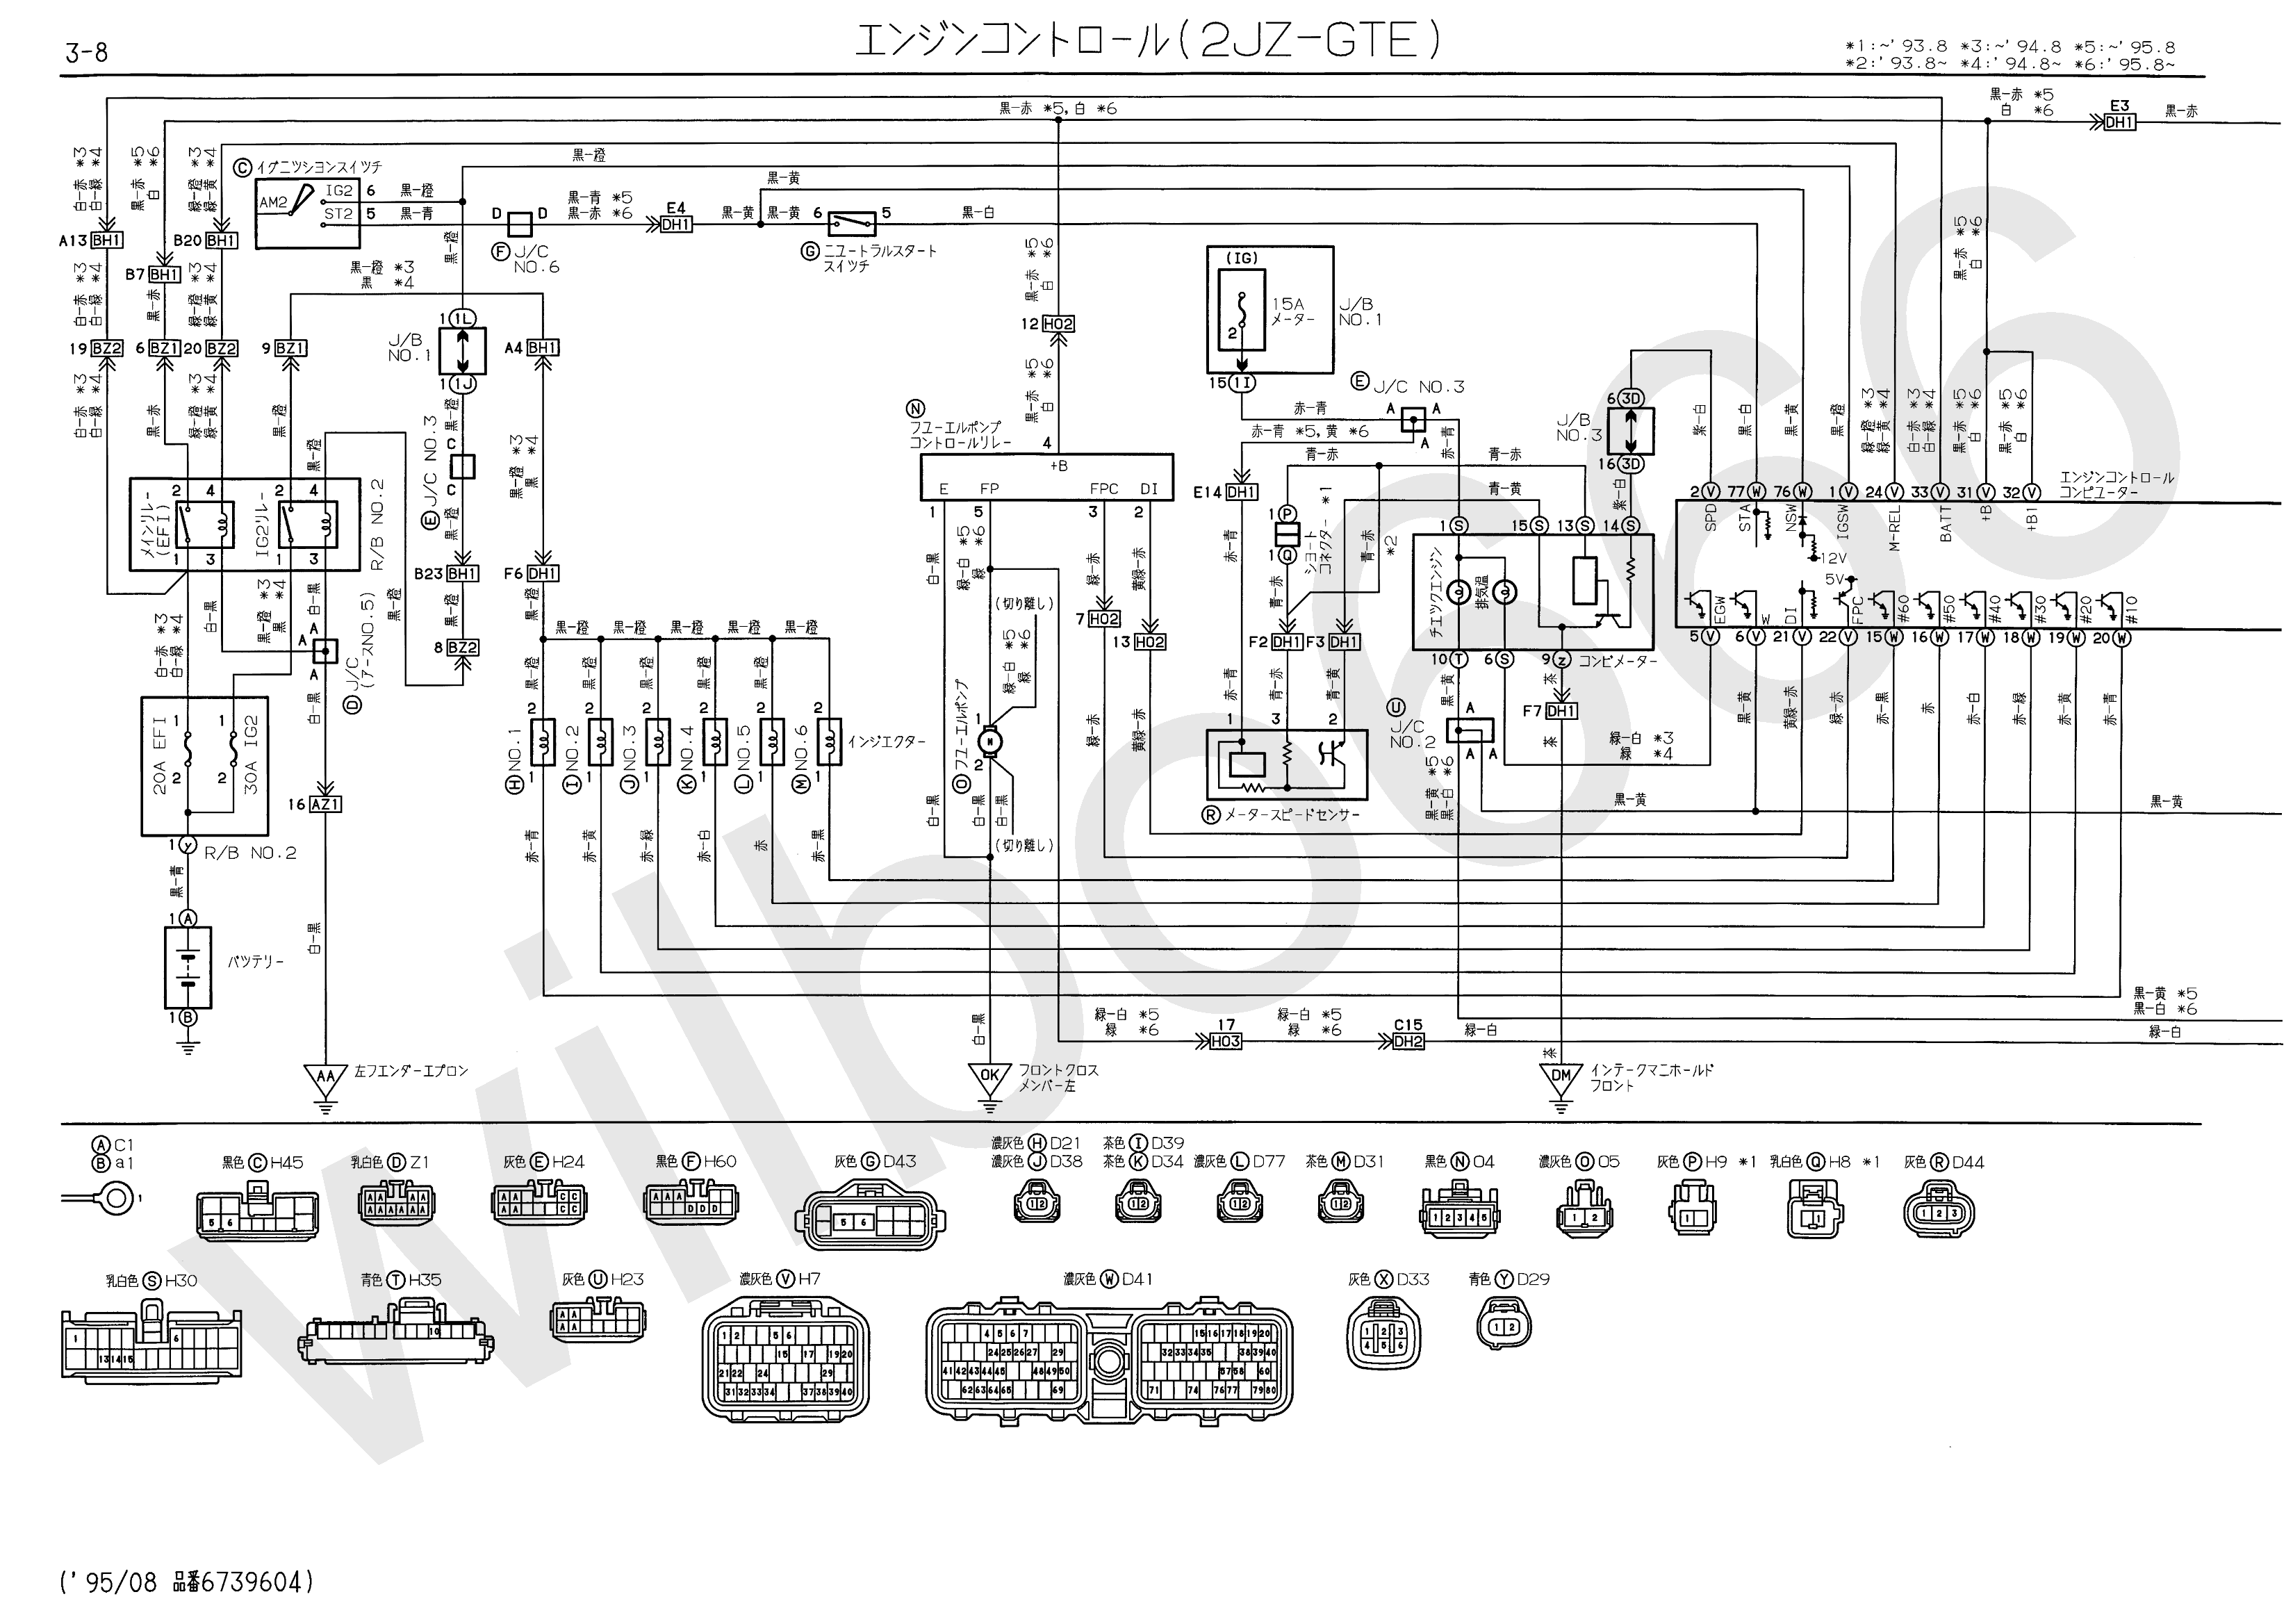 Toyota Supra Wiring Harness Diagram Libraries 2zz Ge Pinout Wire Ecu Todayswilbo666 2jz Gte Jzs147 Aristo Engine Porsche 944